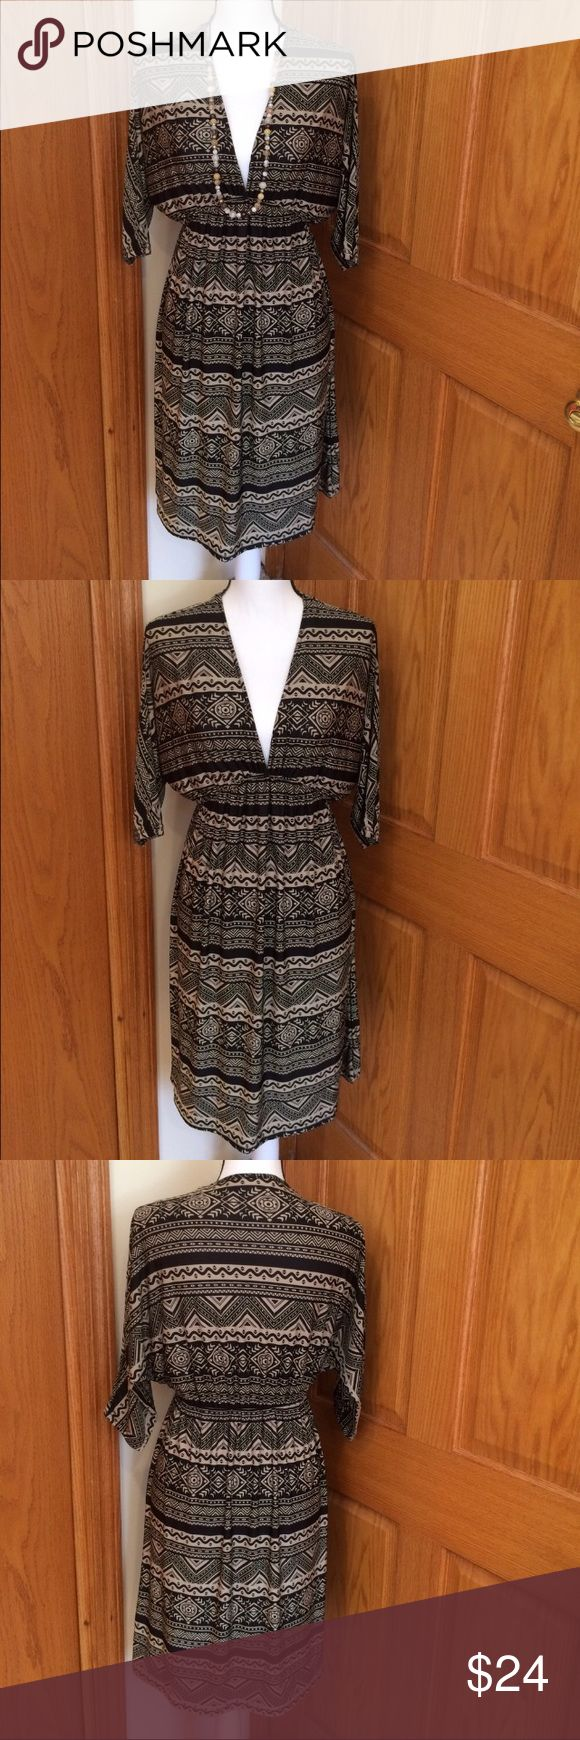 "5th Love Tribal Print Dress Black & Tan tribal print dress with 3/4 sleeves & v - neck. Nice elastic waist. 95% polyester & 5% spandex. Measurements approximately as follows: bust 42"" and length 37.5"". EUC. 5th Love Dresses Midi"